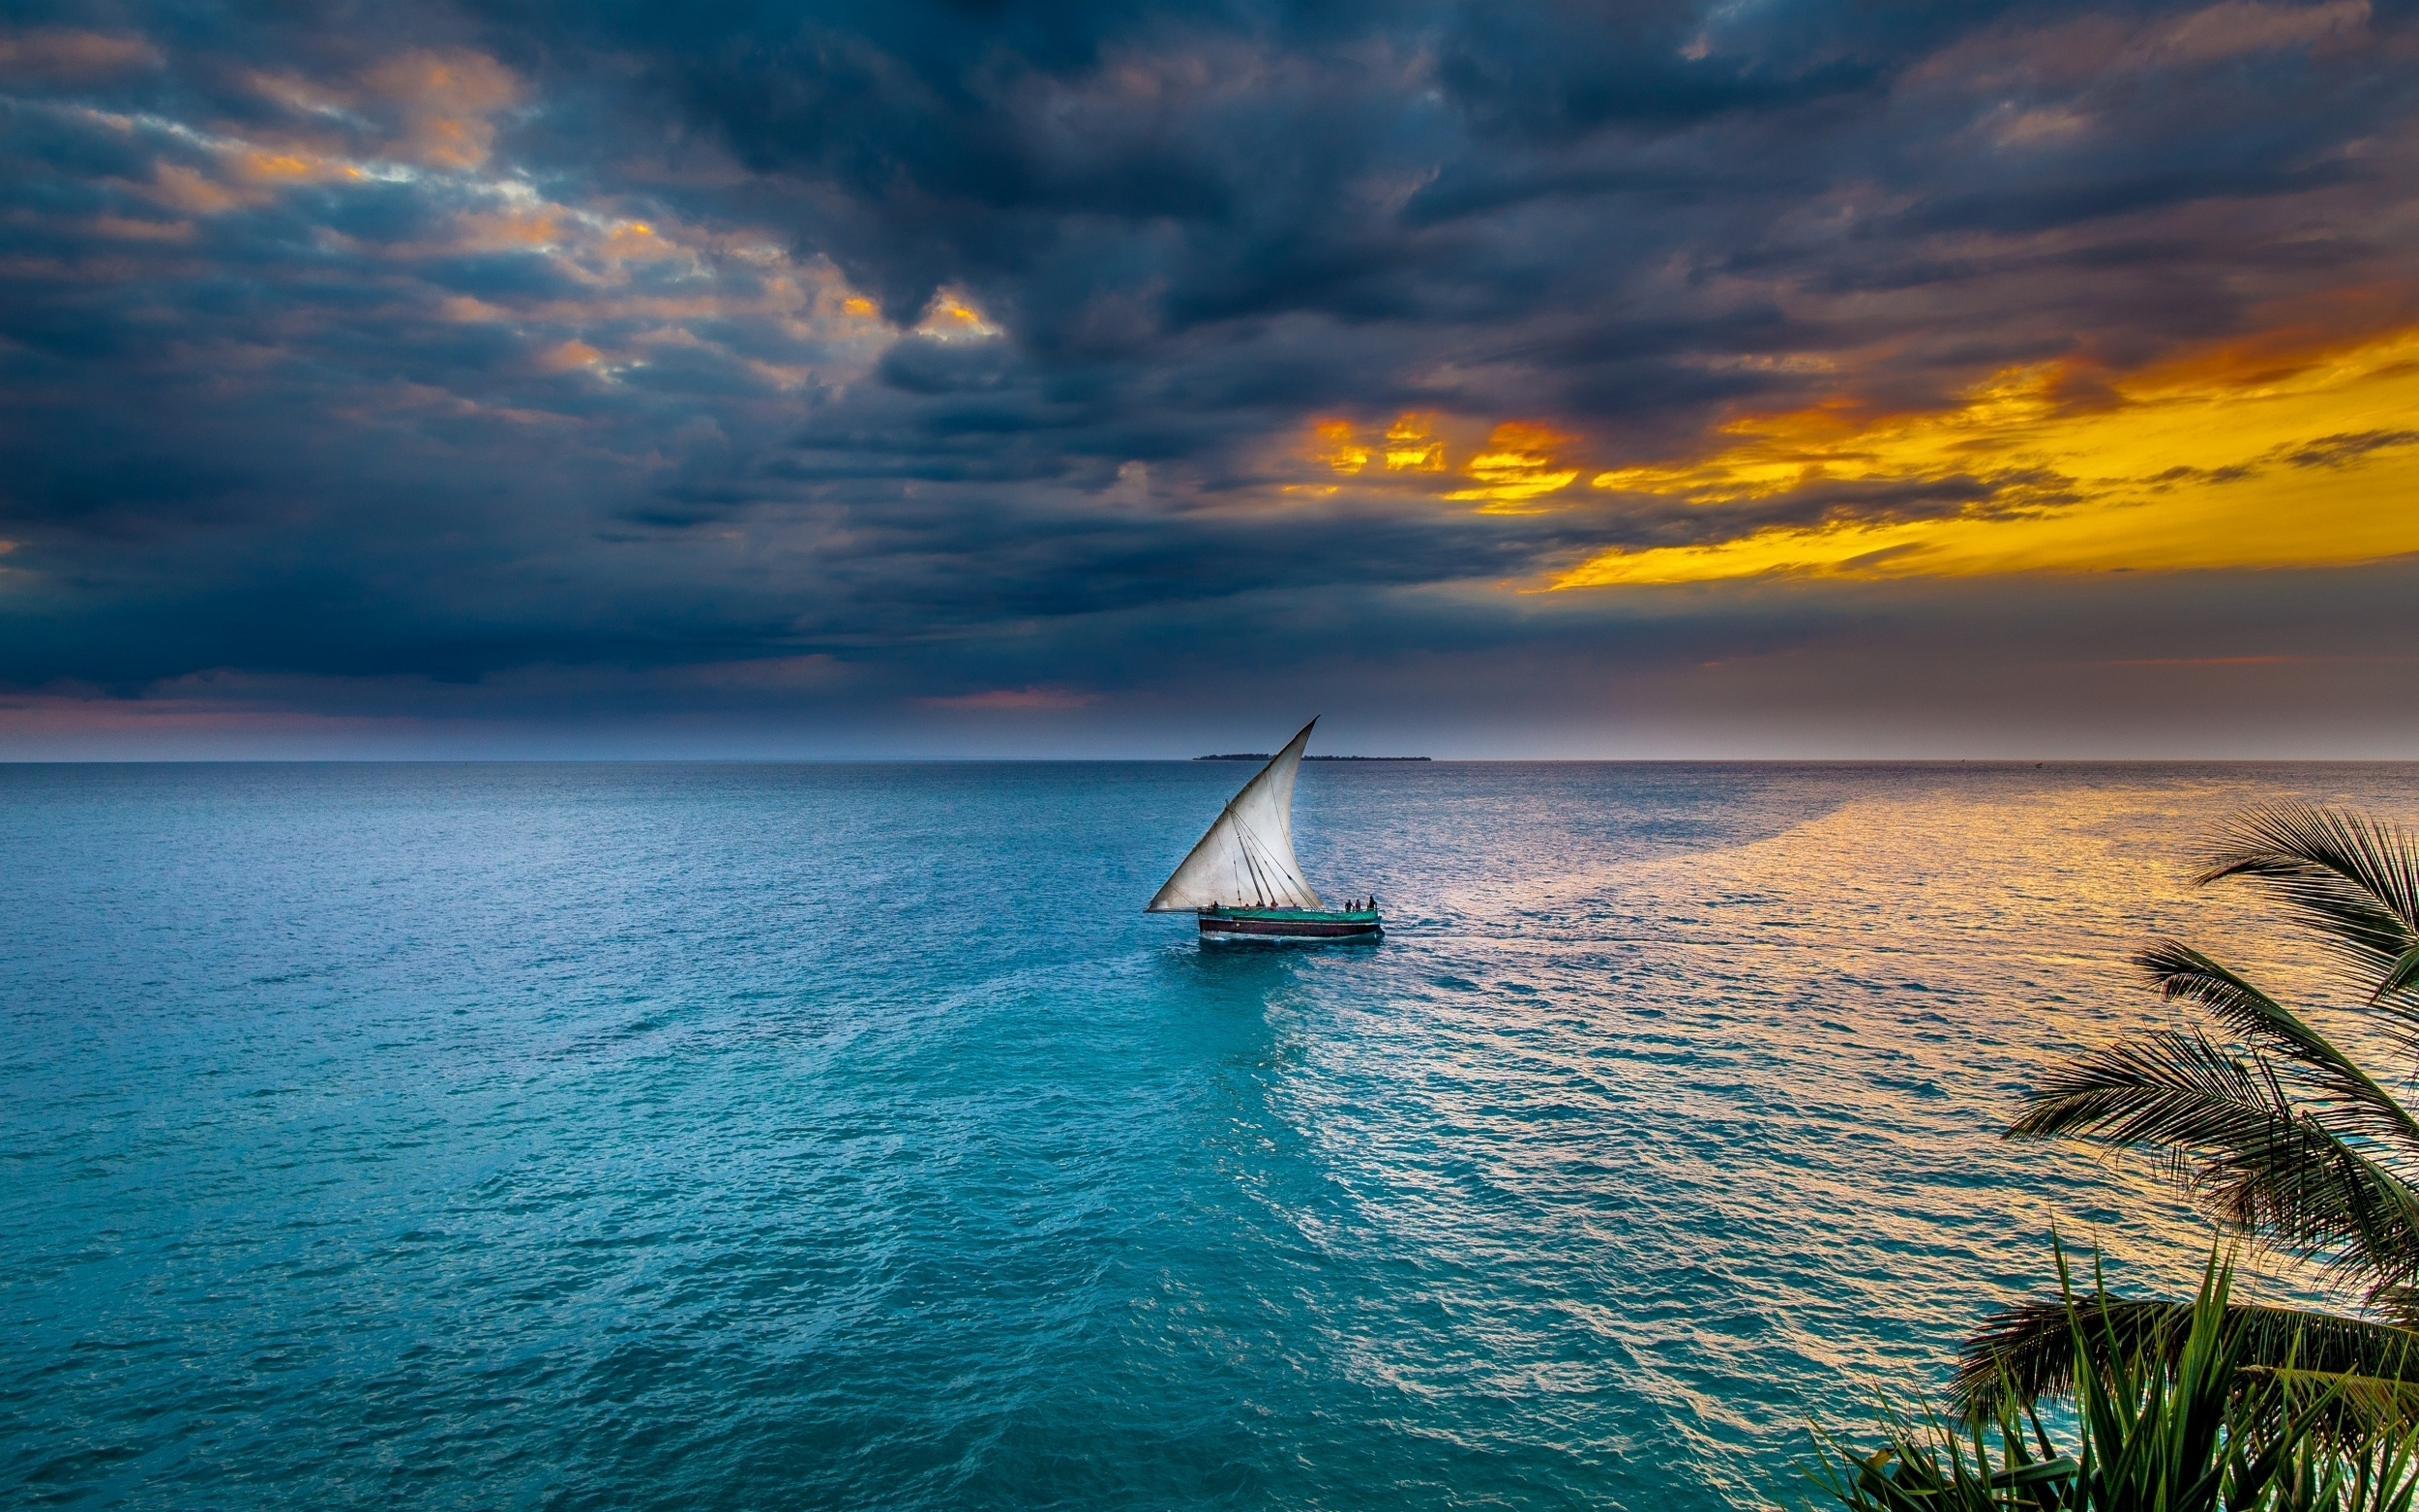 Sailing At Sunset Full Hd Wallpaper And Background Image HD Wallpapers Download Free Images Wallpaper [1000image.com]